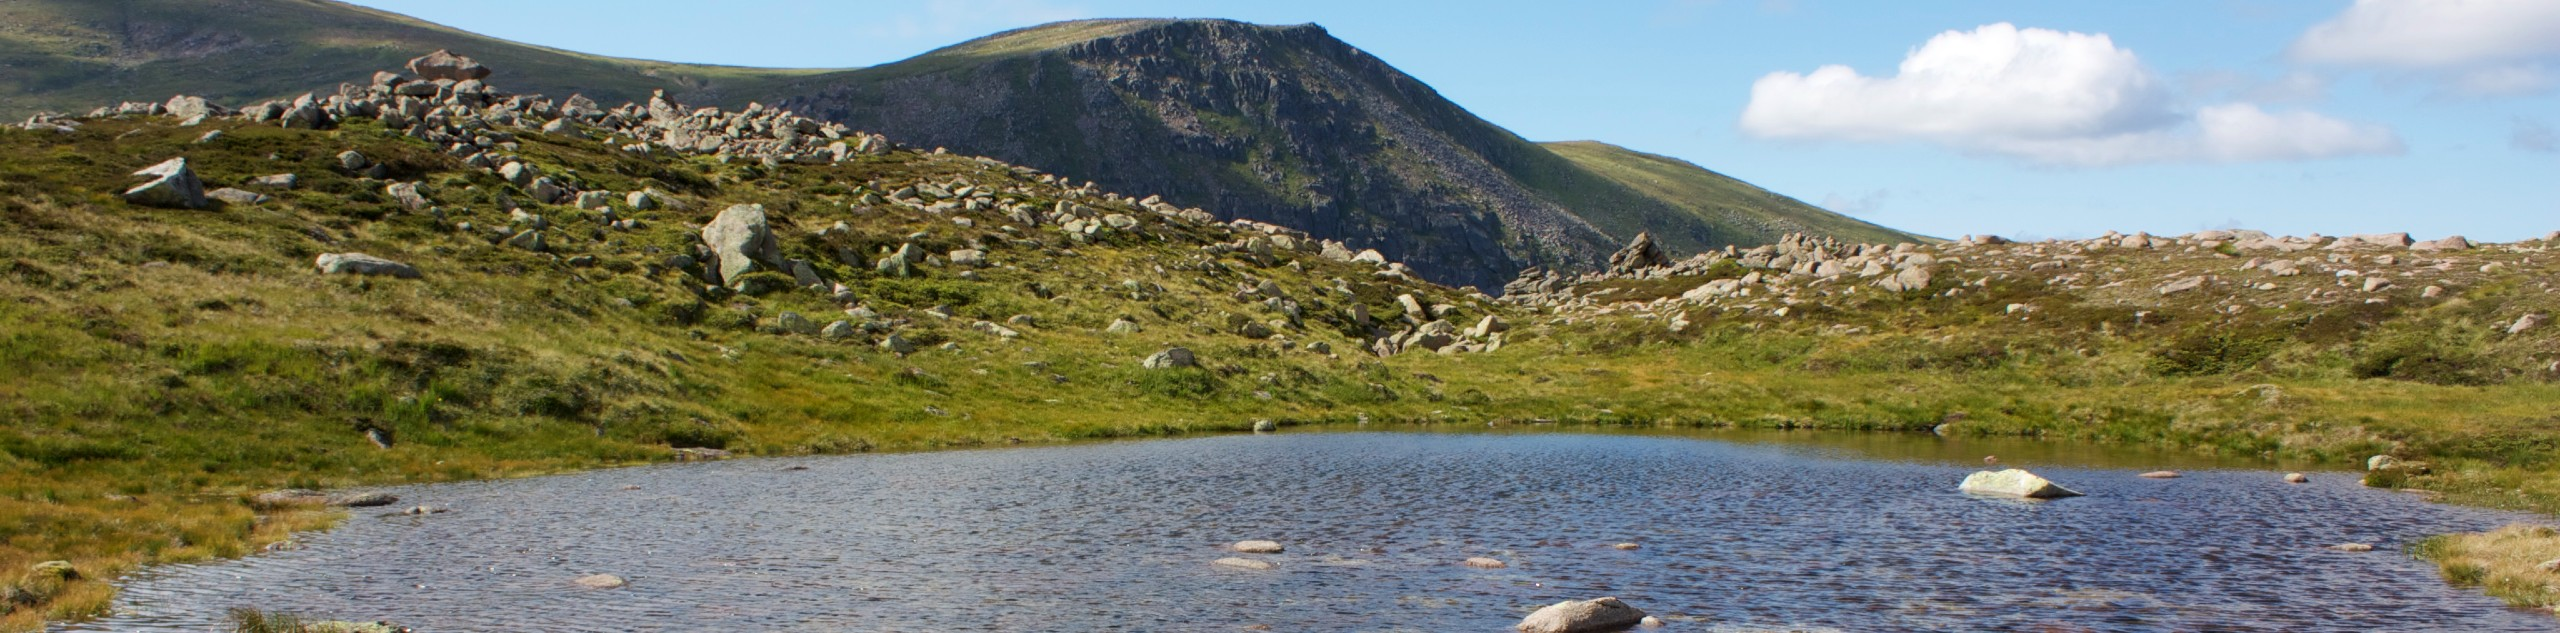 Cairn Gorm and the Northern Corries Walk